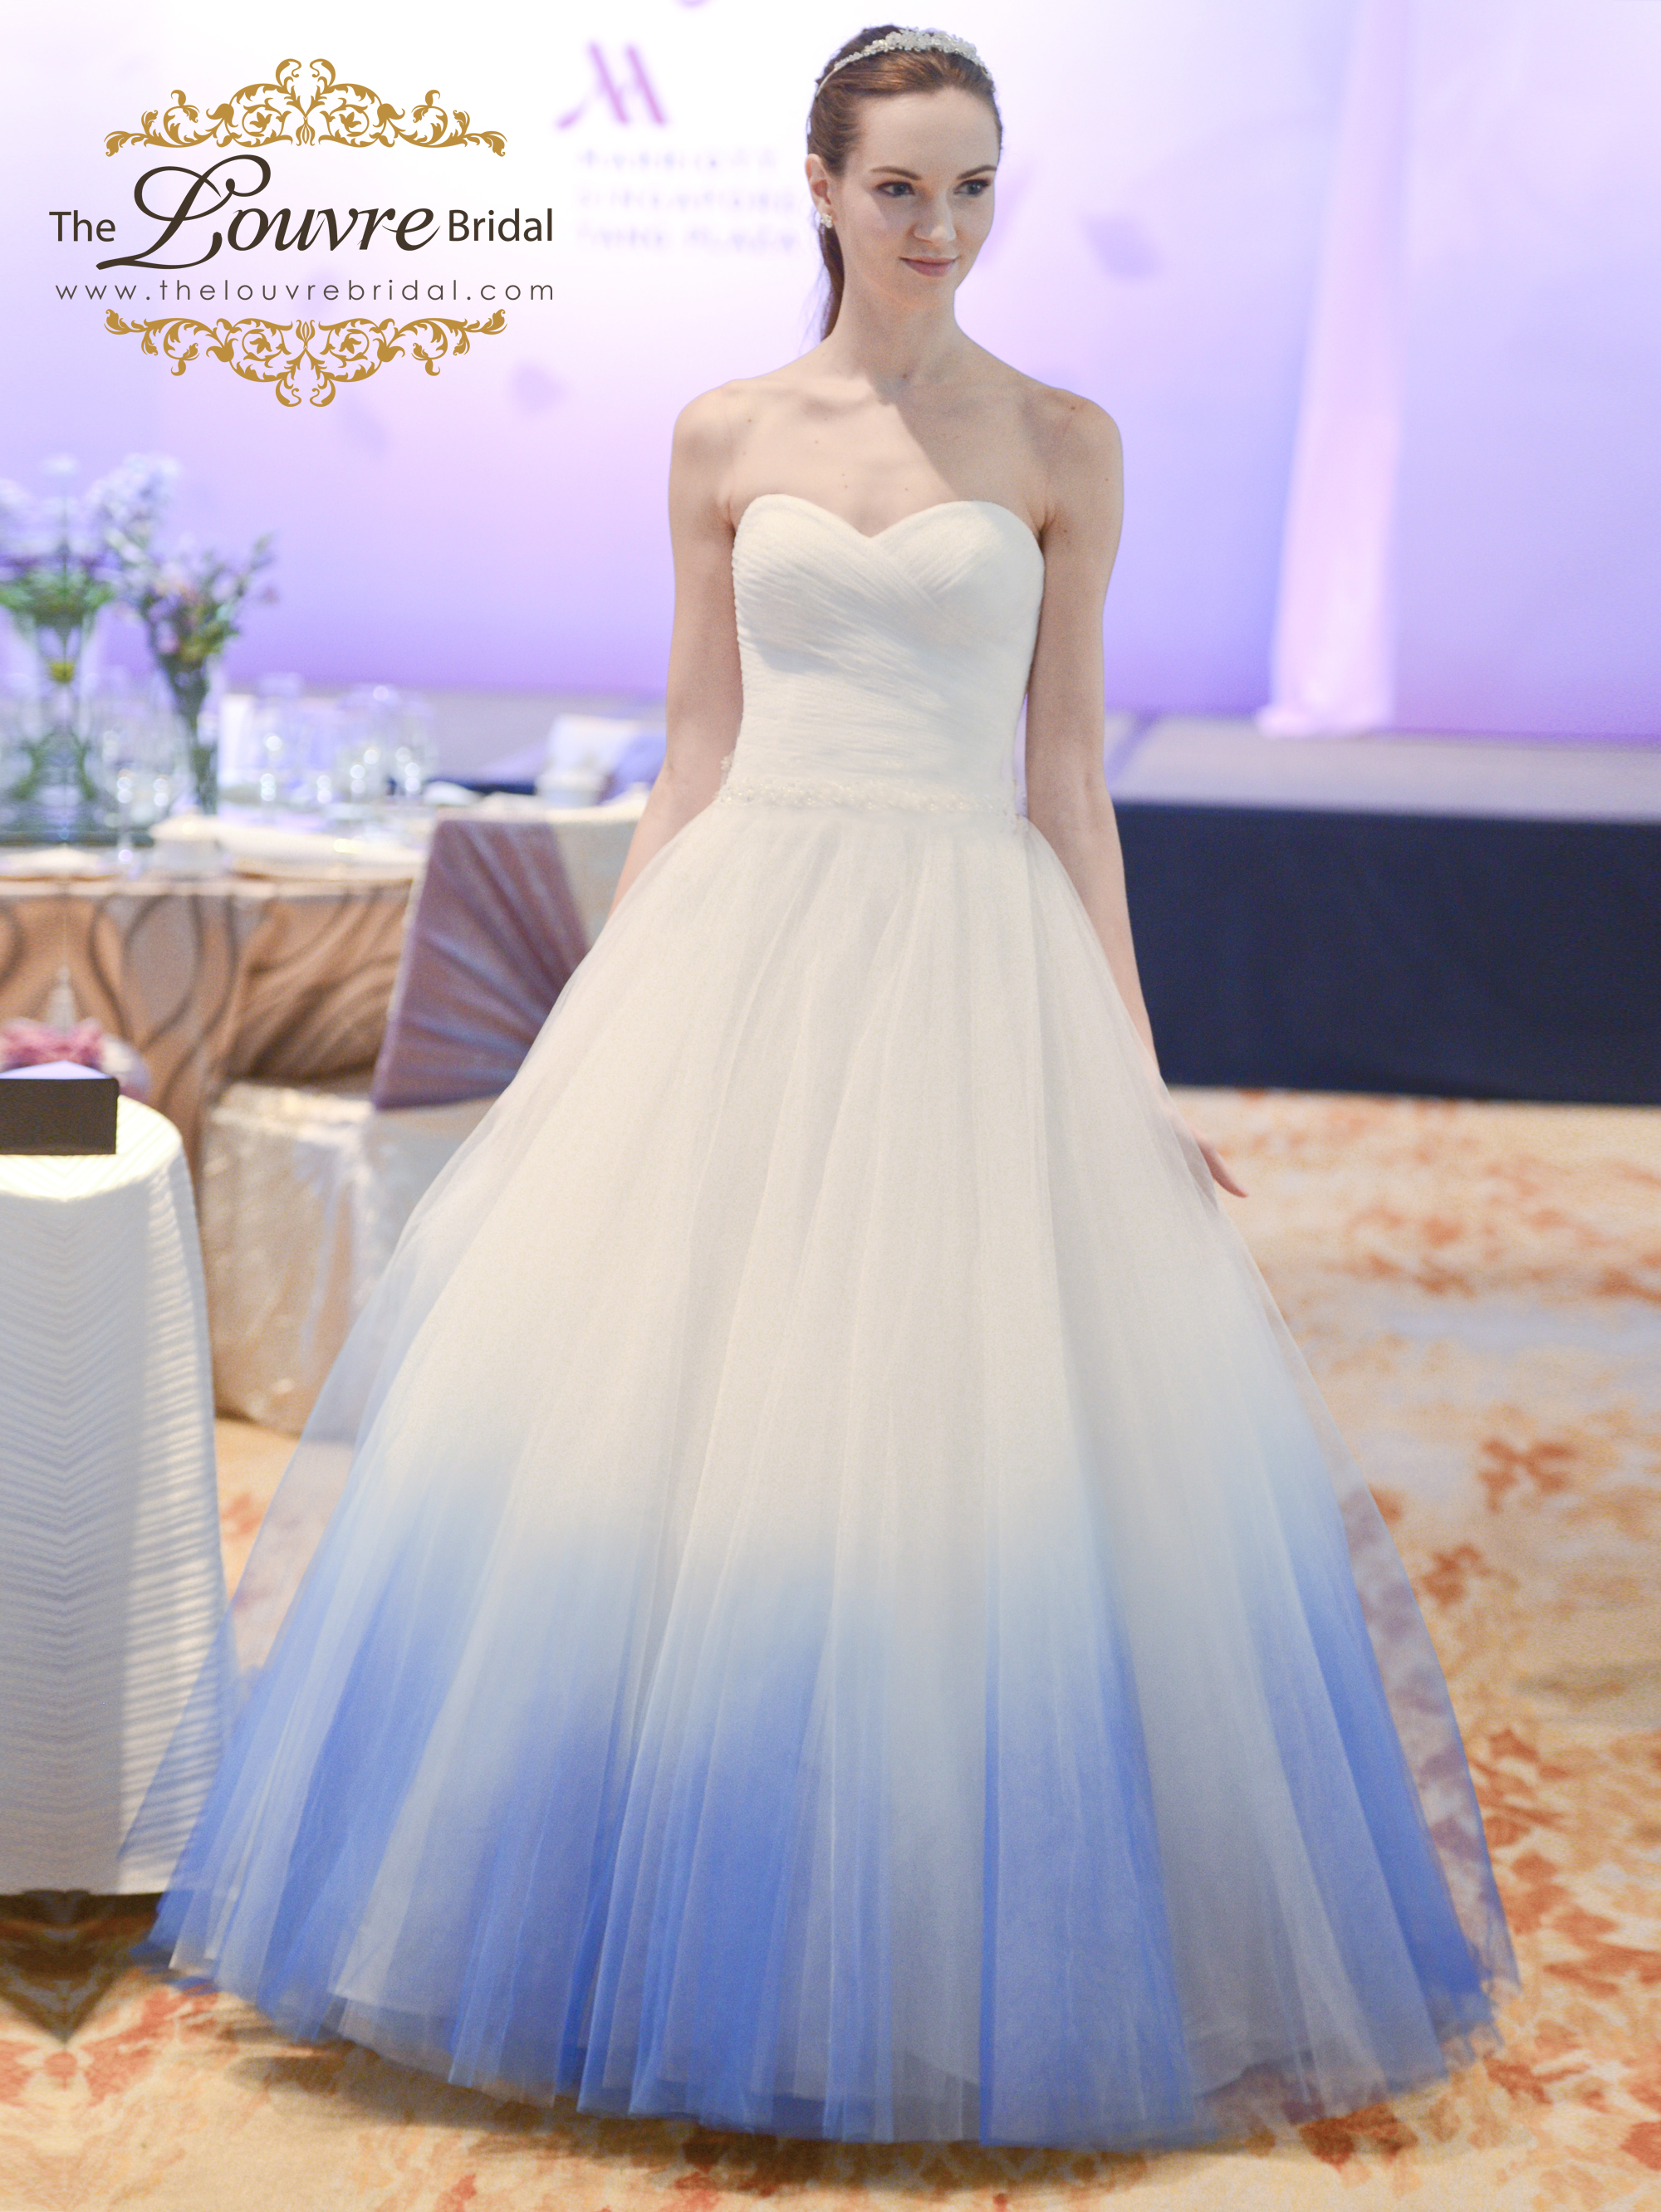 Wedding Gown Tips: How to choose a flattering coloured ...